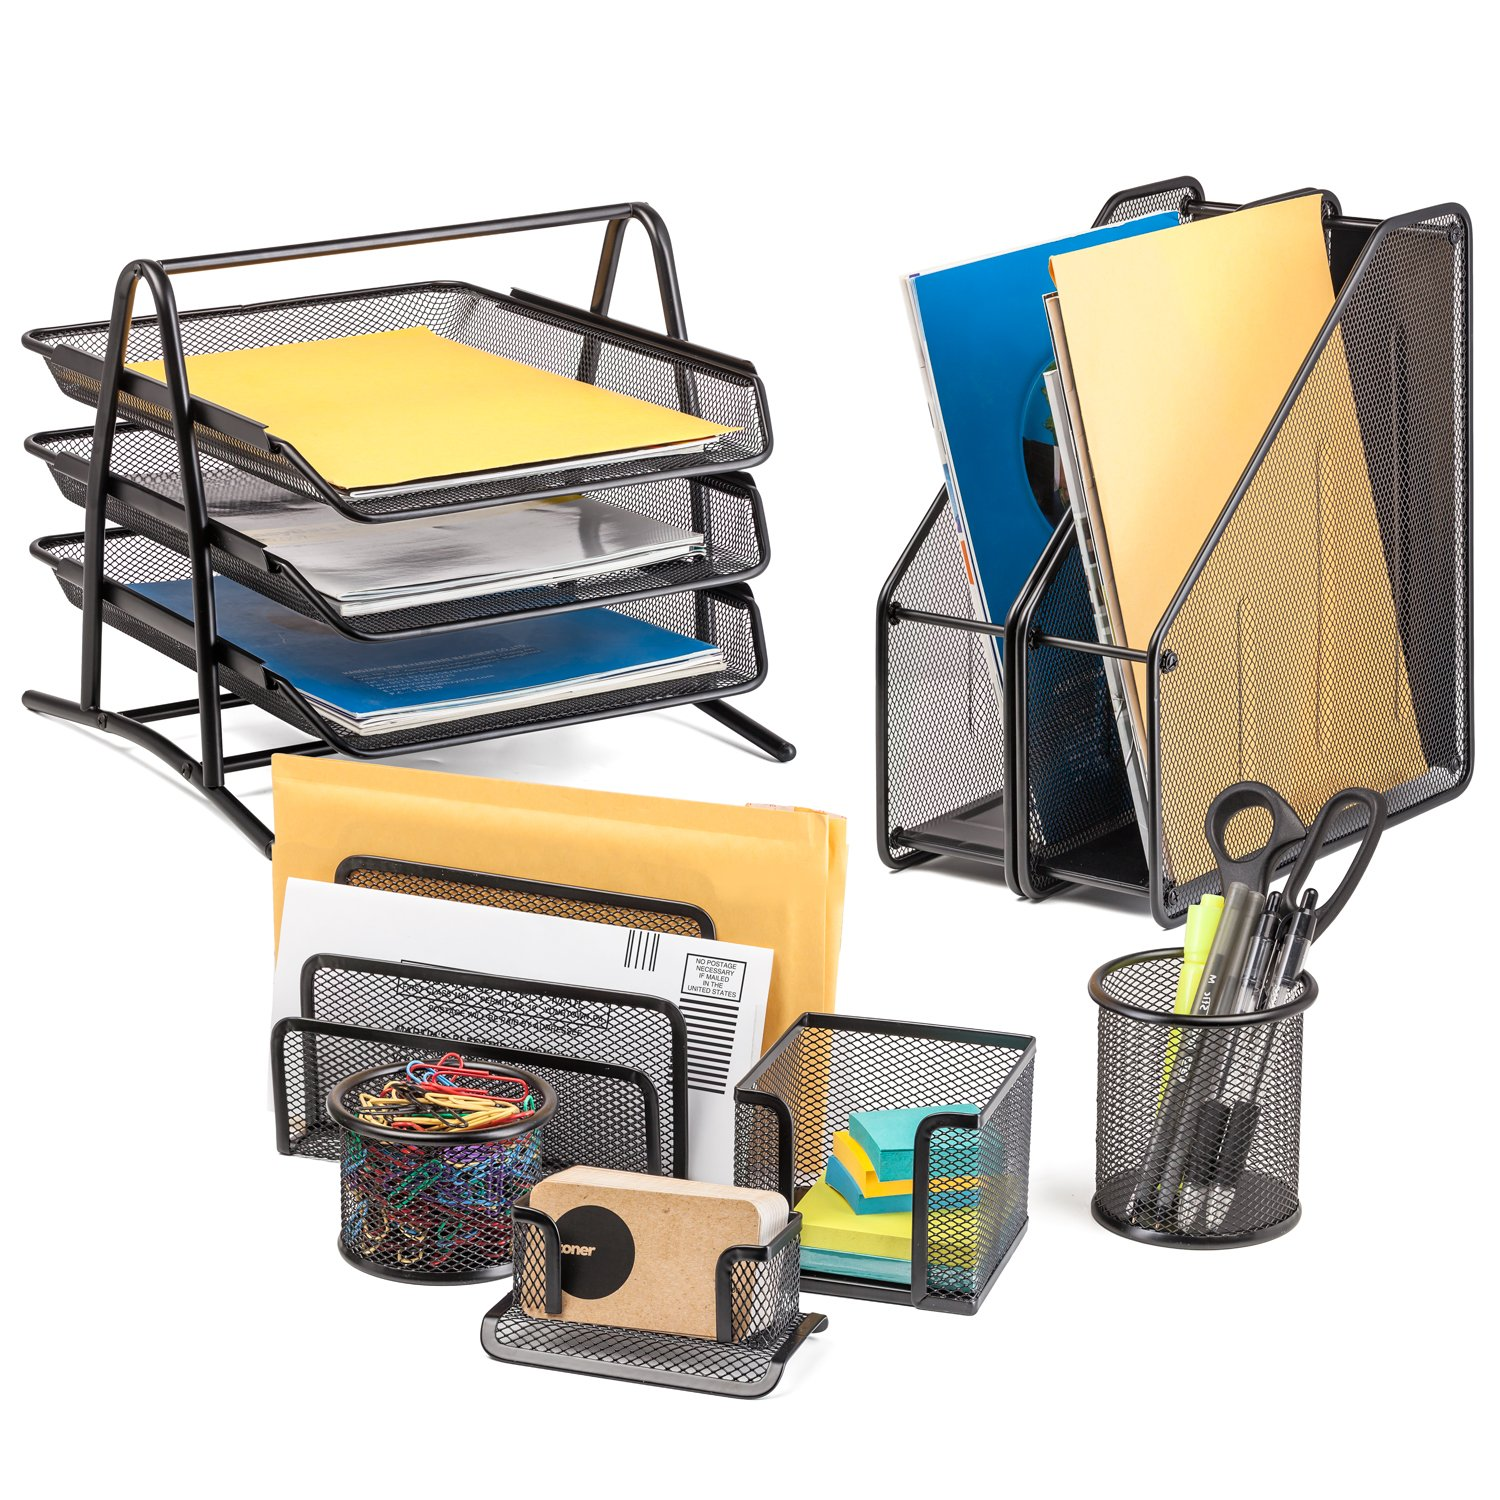 Halter 8 Piece Mesh Office Desk Set - 3 Tier File Tray   Pencil Cup   Business Card Holder   Memo Holder   Letter Holder   Small Accessories Cup   (2x) Magazine / File Holder